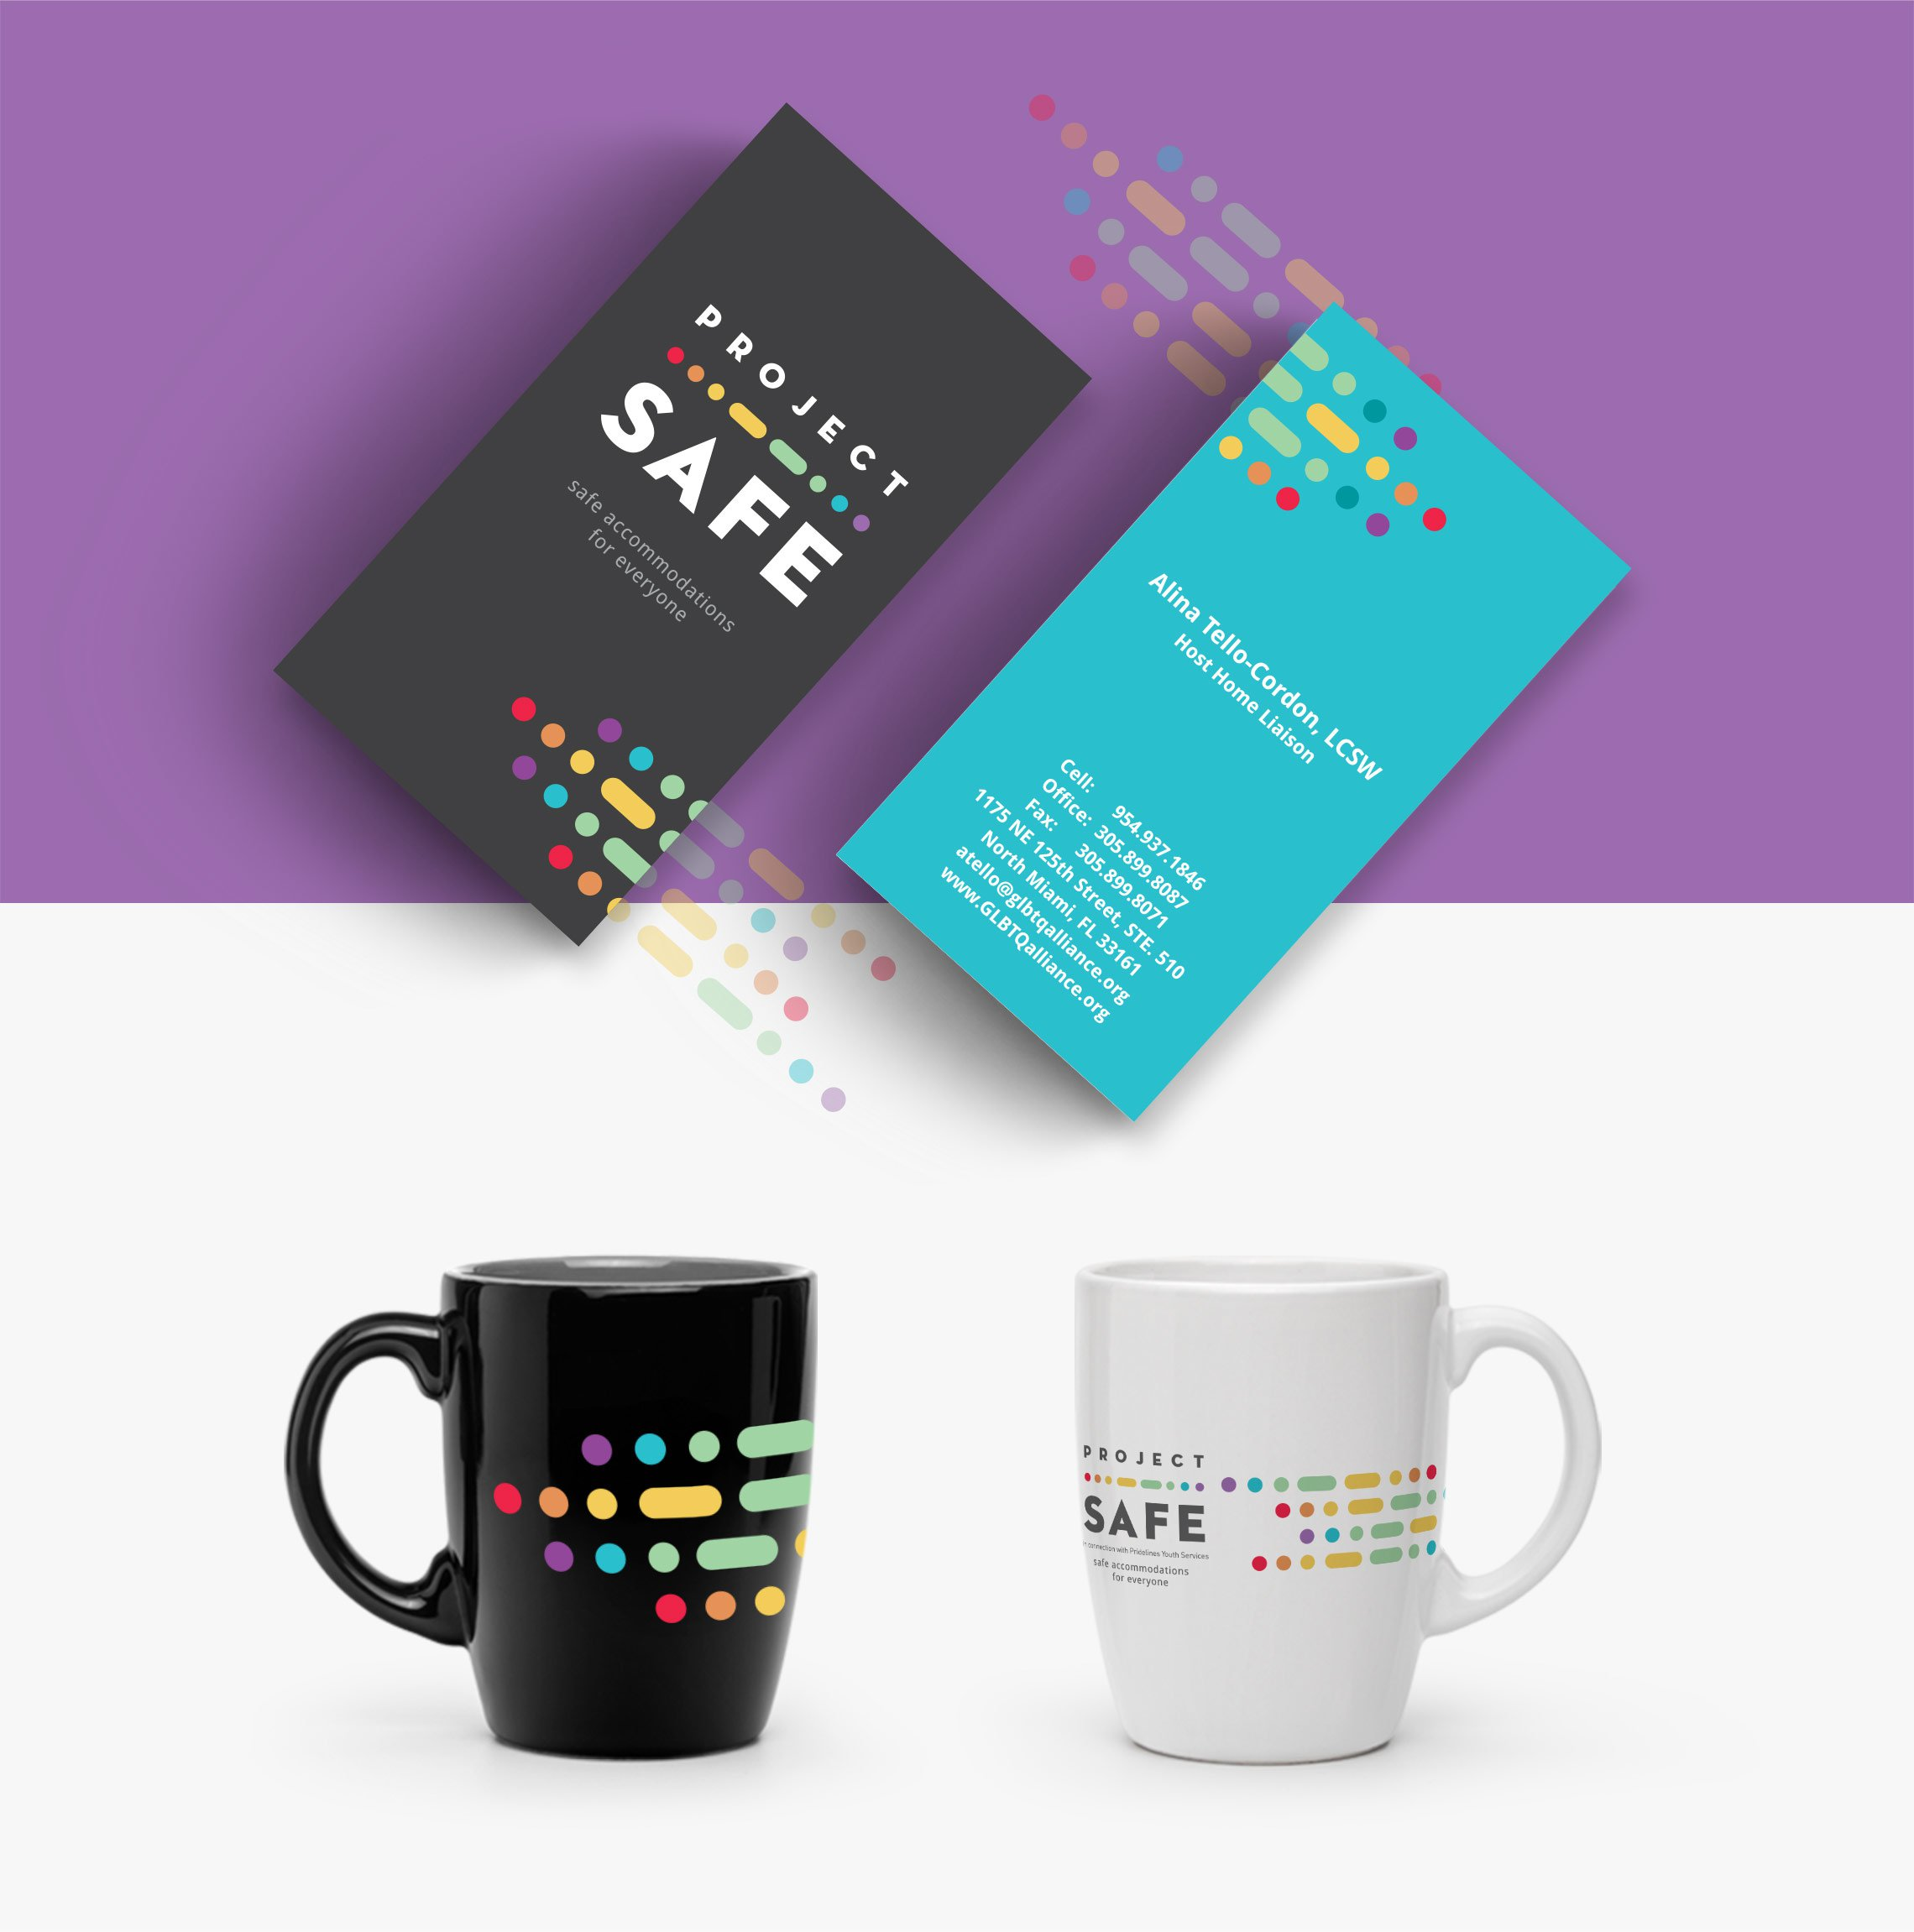 Project Safe branded business card and mug